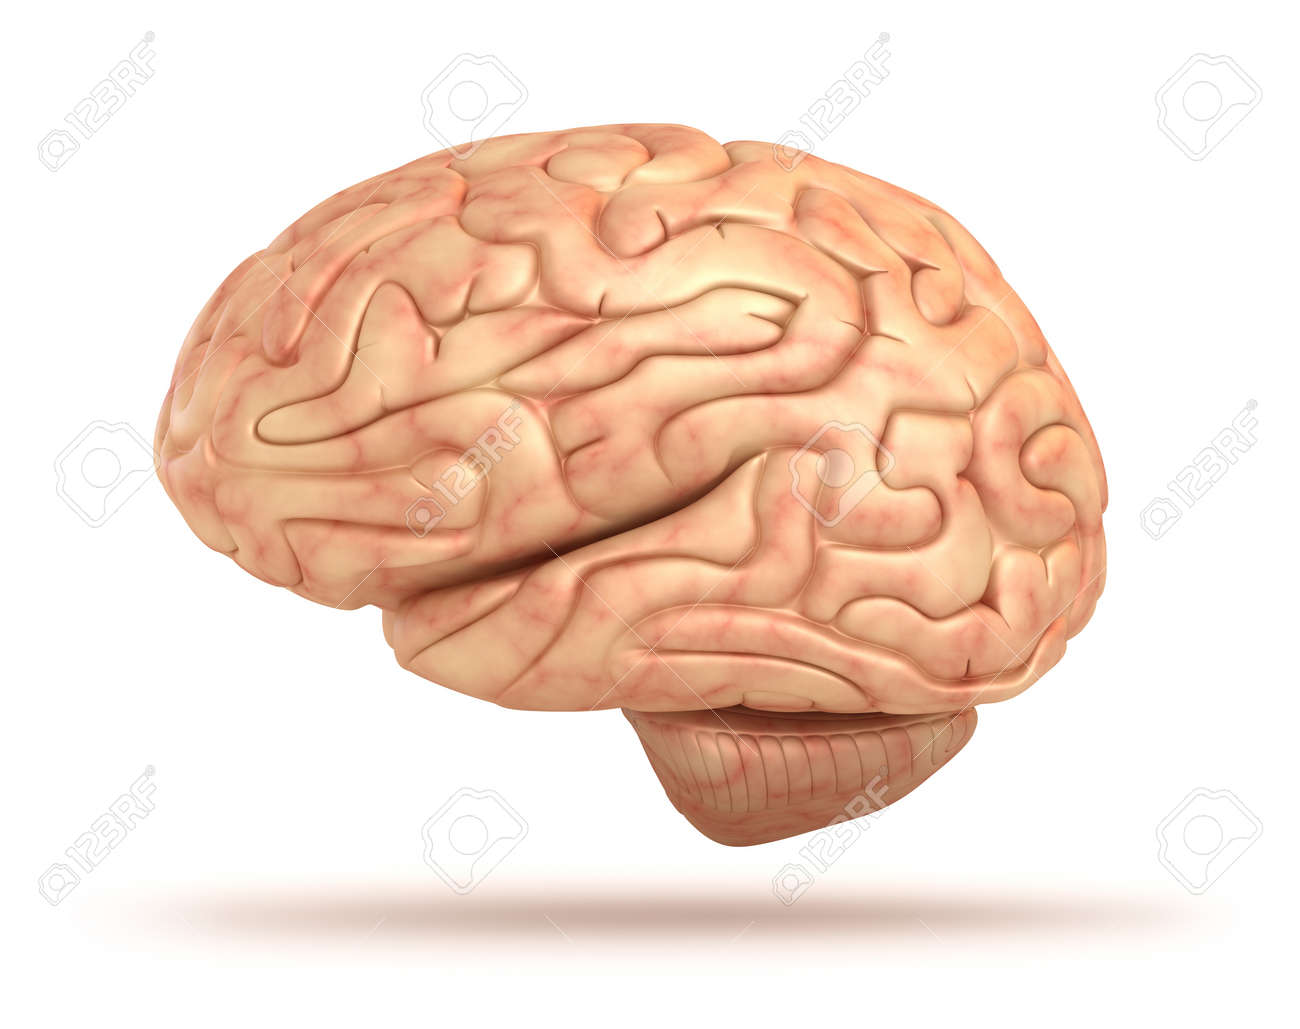 Human Brain 3d Model Isolated Stock Photo Picture And Royalty Free